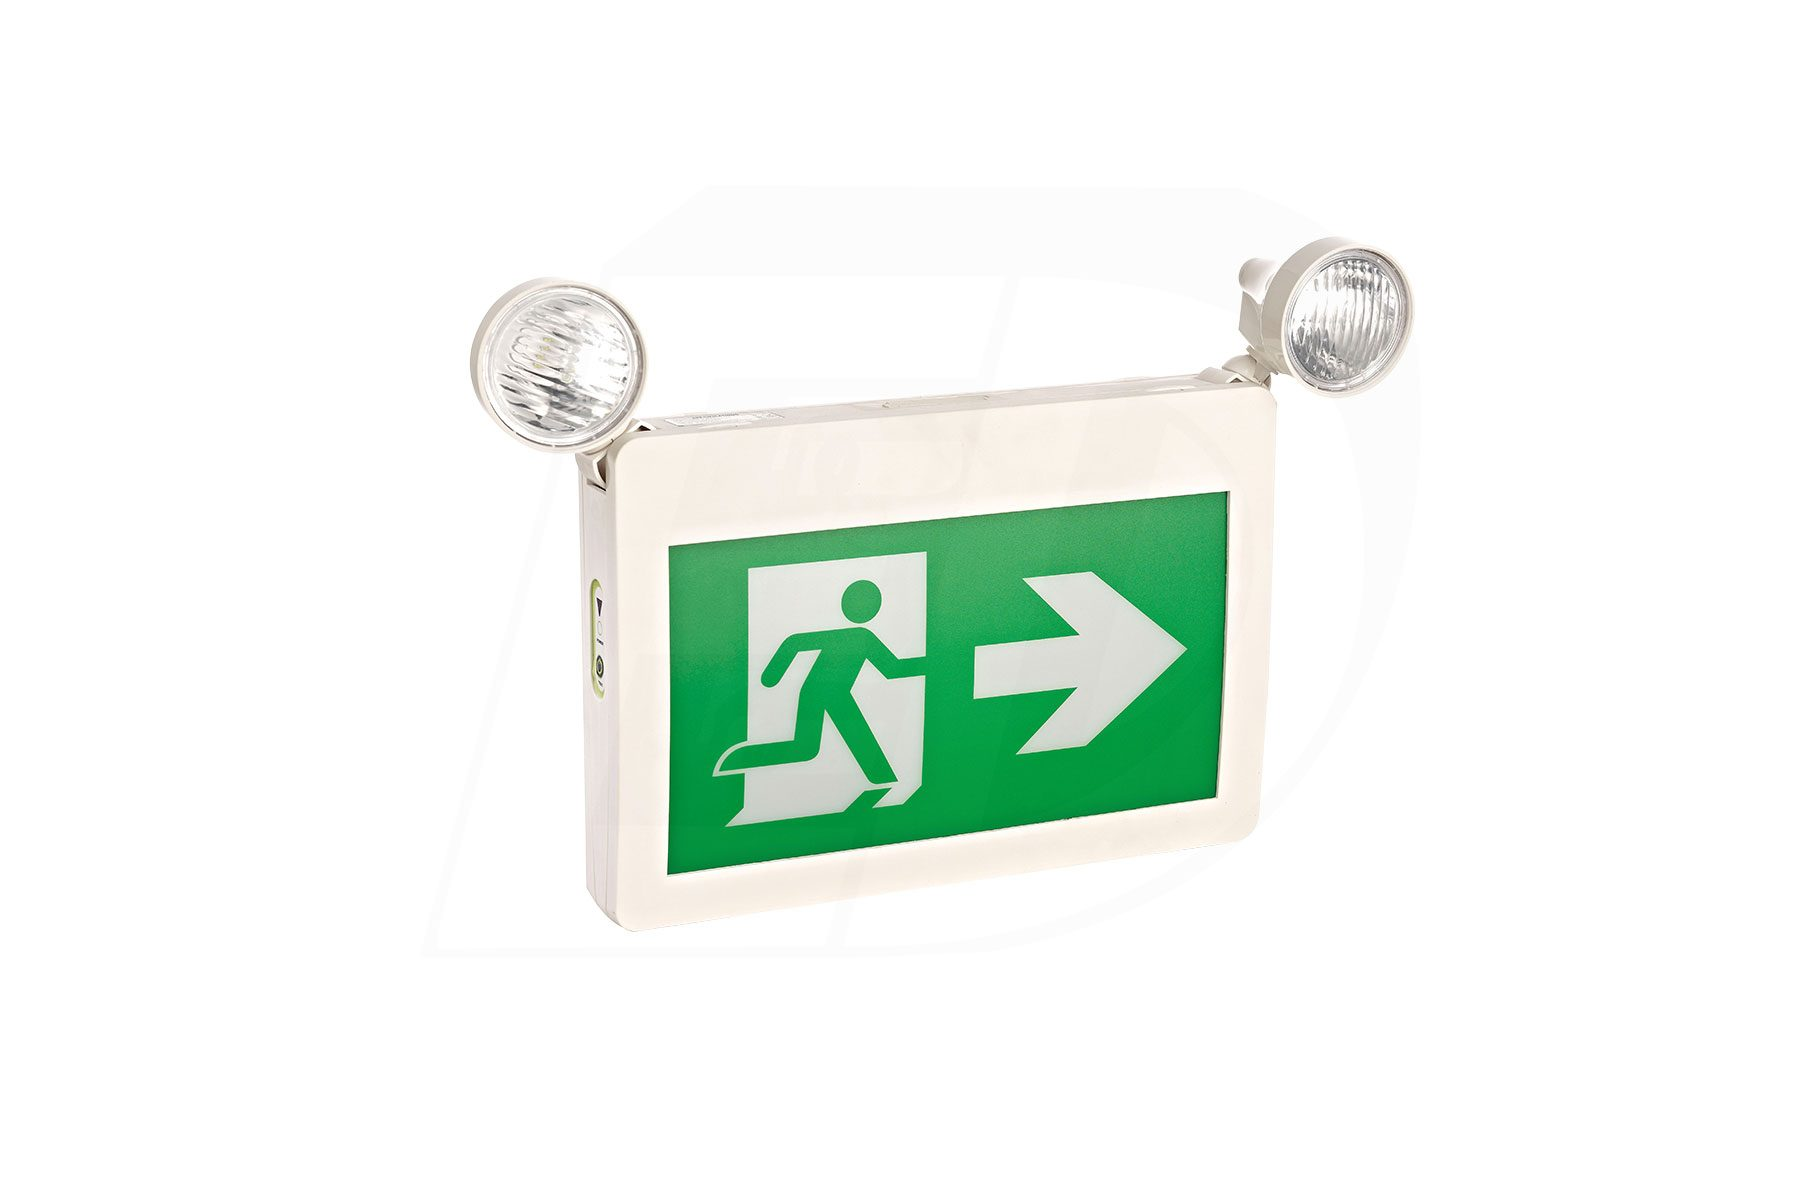 EC222WH-A13BB-GU-4 - LED RUNNING MAN EXIT SIGN WITH COMBO HEADS